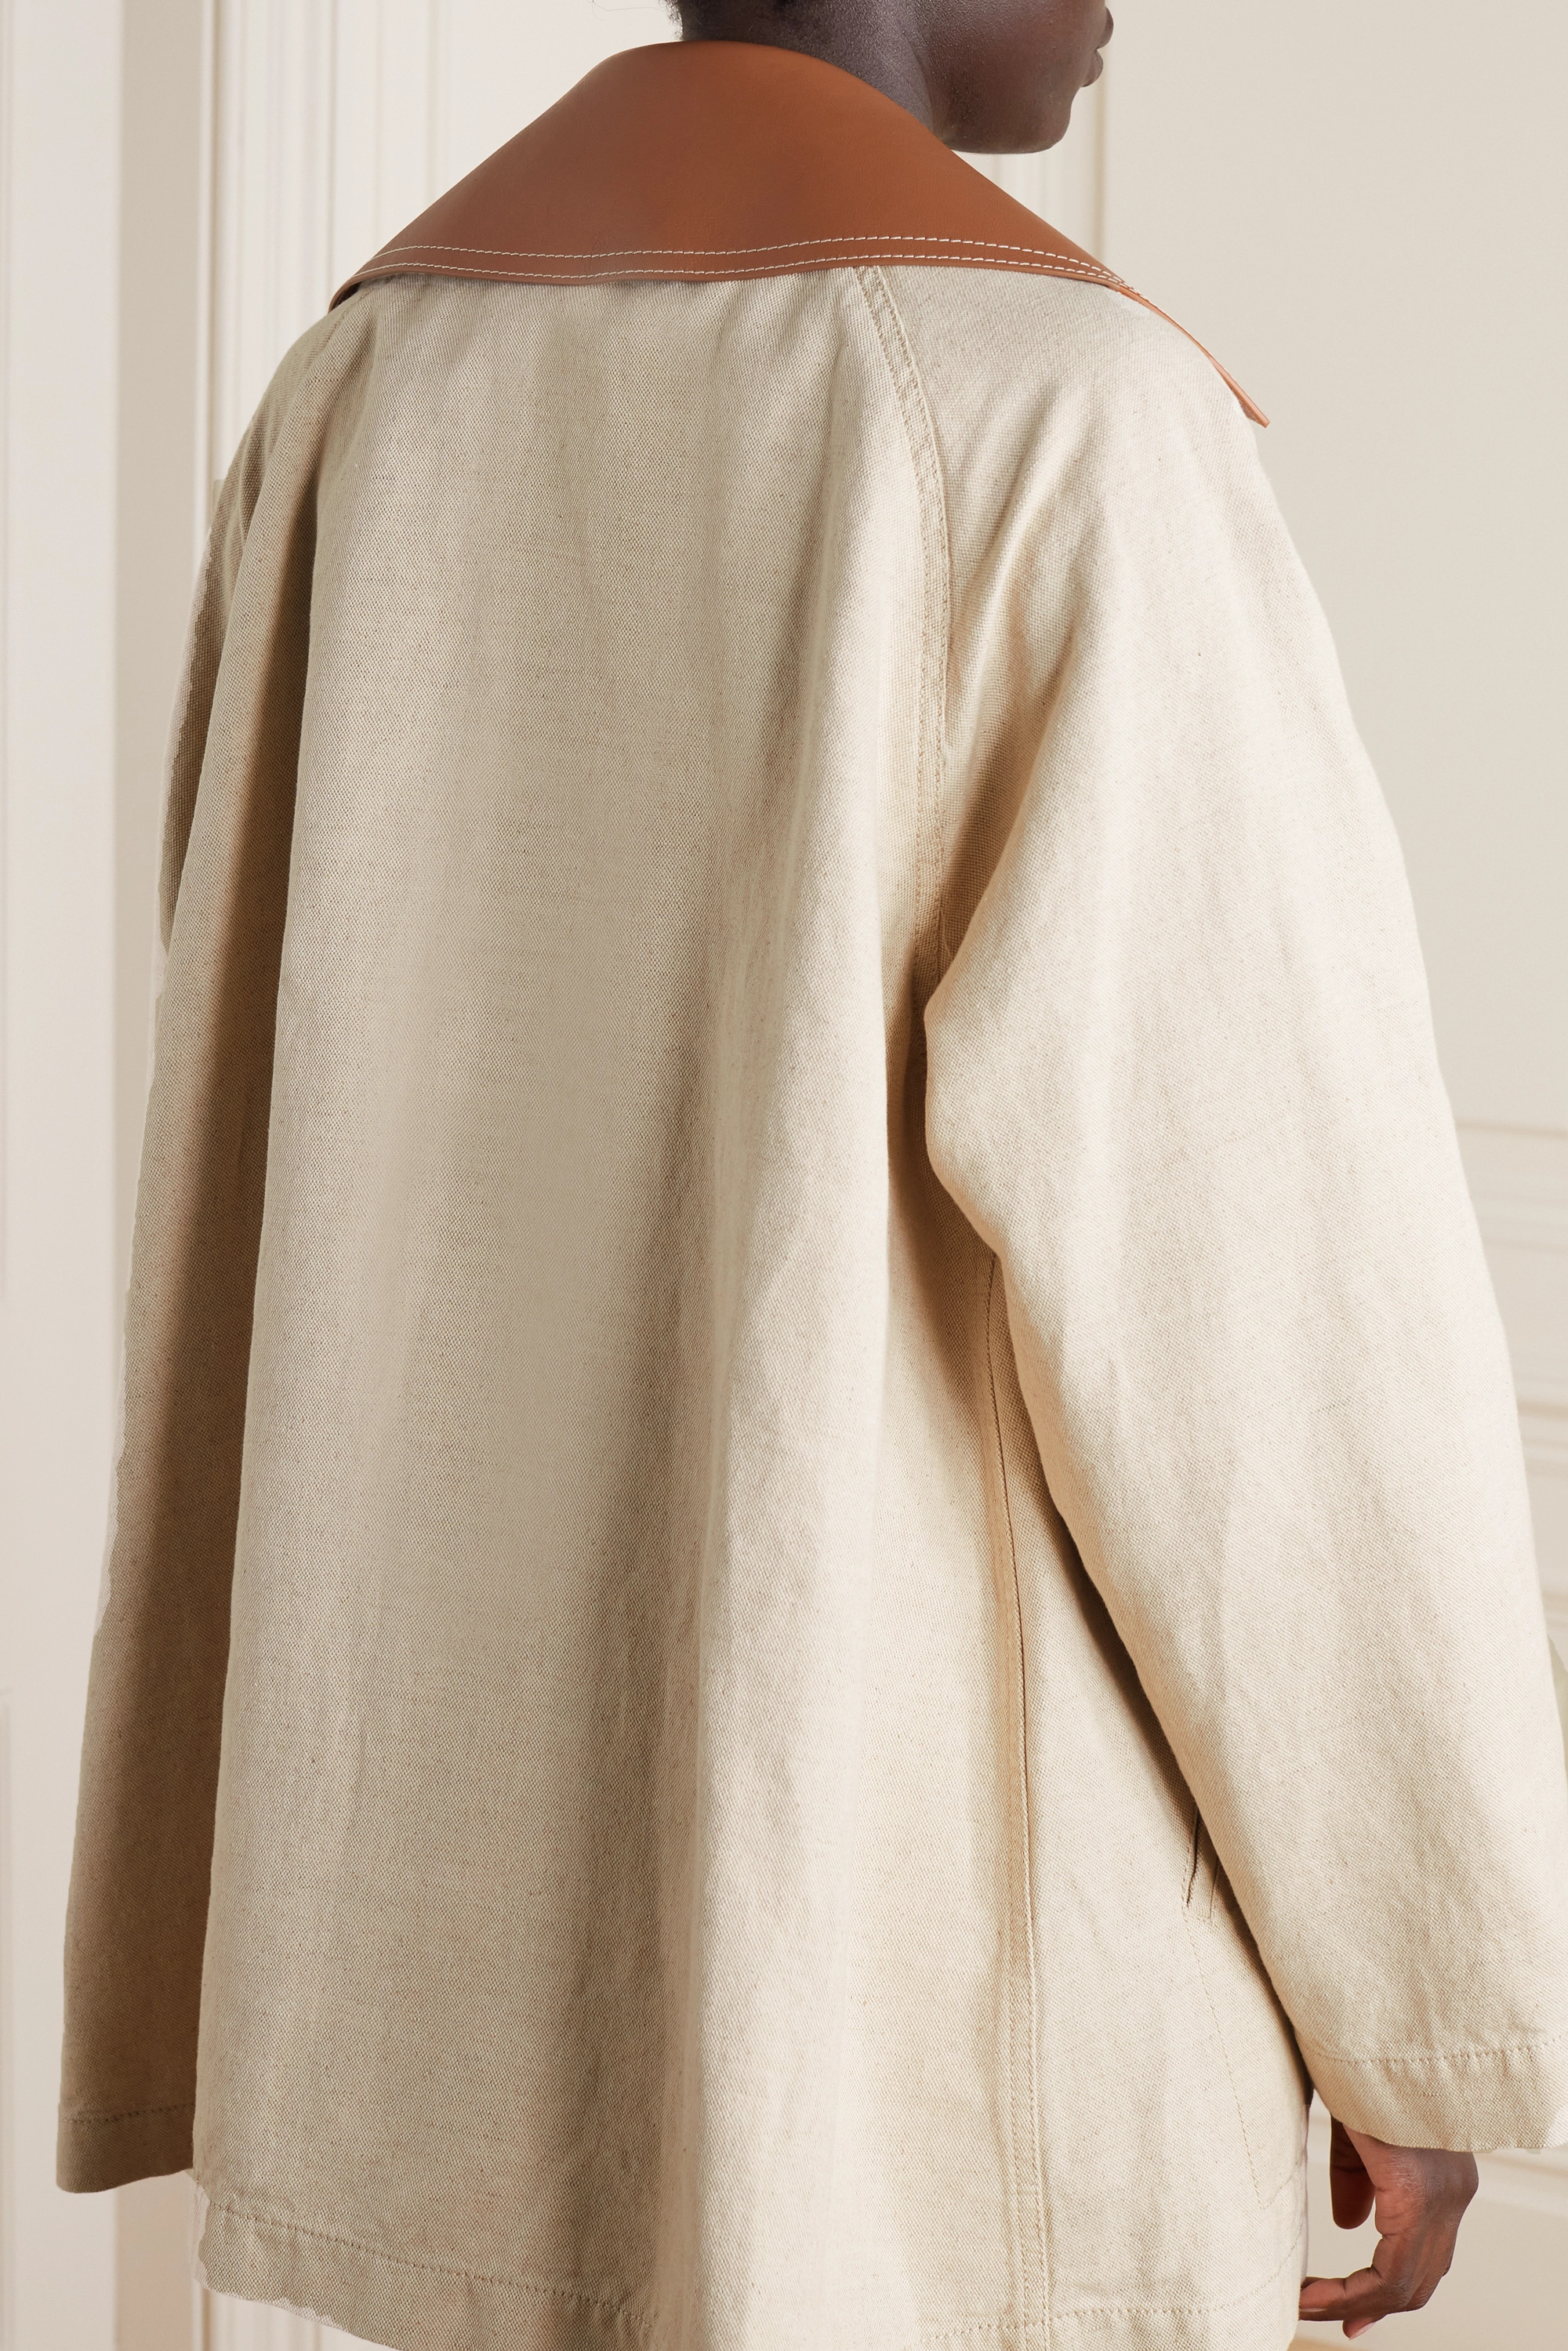 Loewe Double-breasted leather-trimmed cotton and linen-blend coat